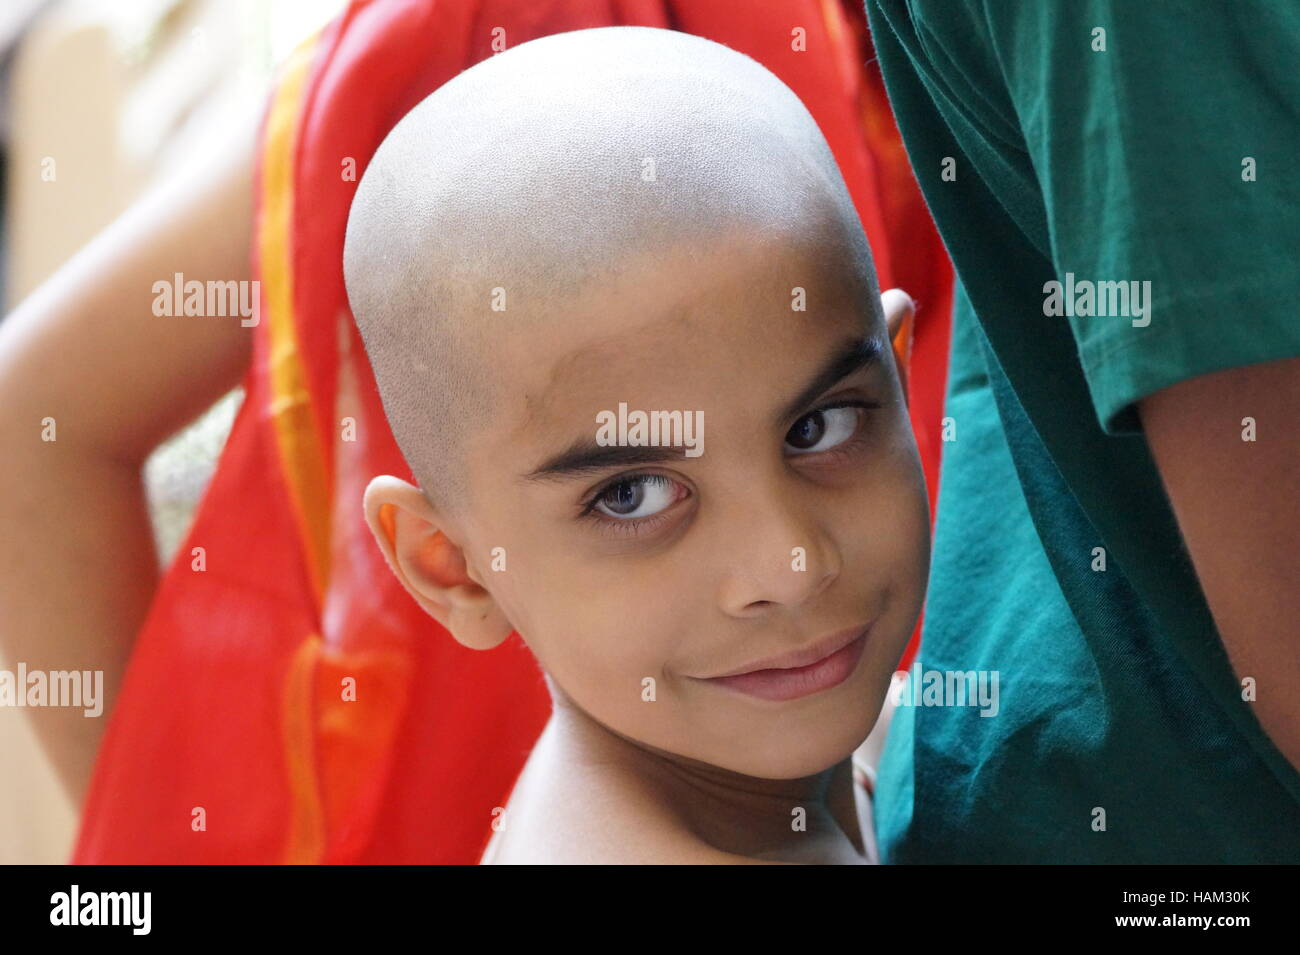 A candid photo,Indian boy after rituals,A cute India boy,Eyes speaks,Indian boy,Buddhist,Upanayan sanskar,Indian - Stock Image